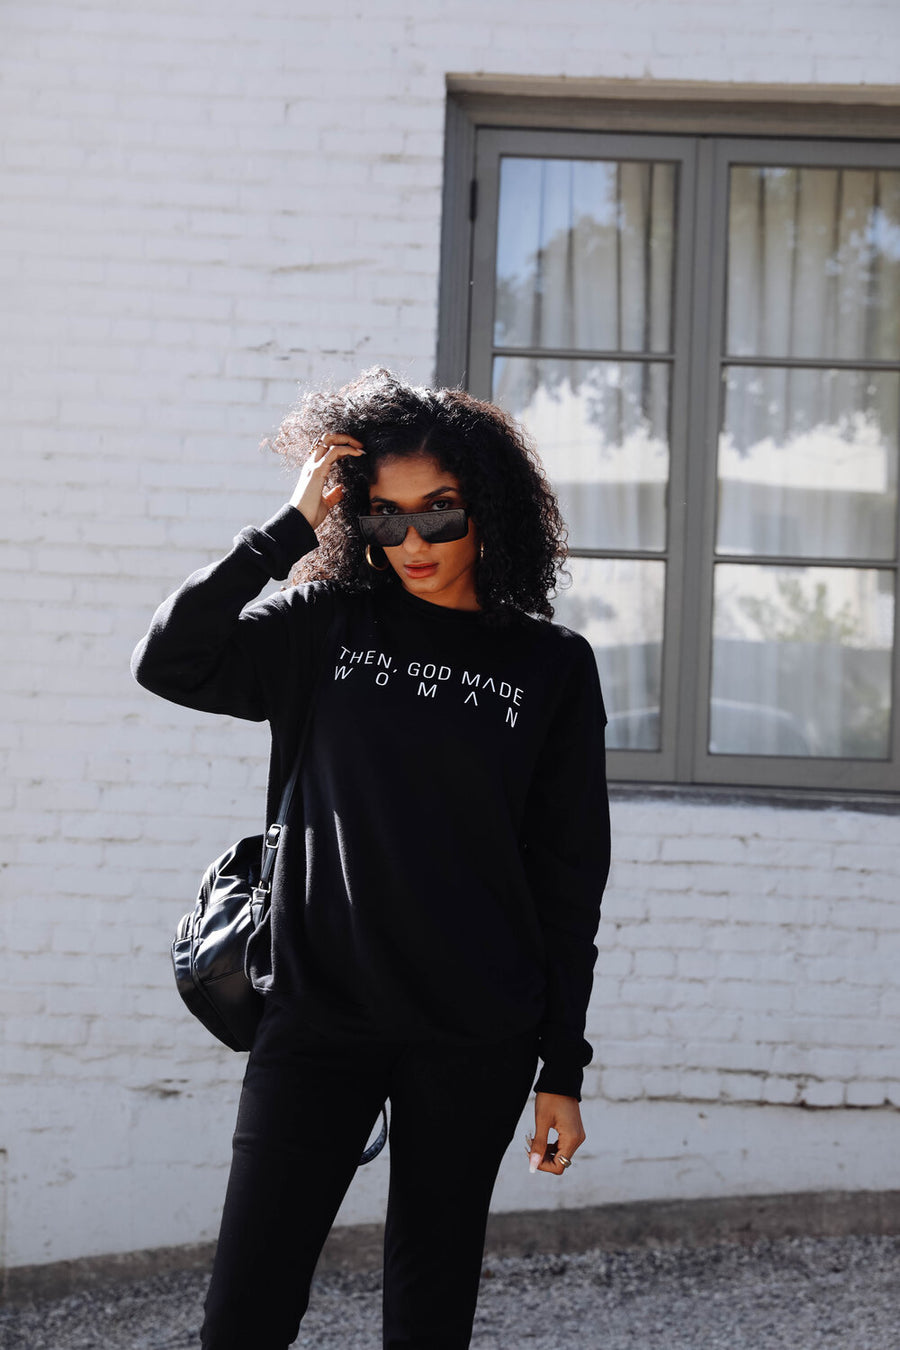 Then, God Made Woman Unisex Sweatshirt - Black